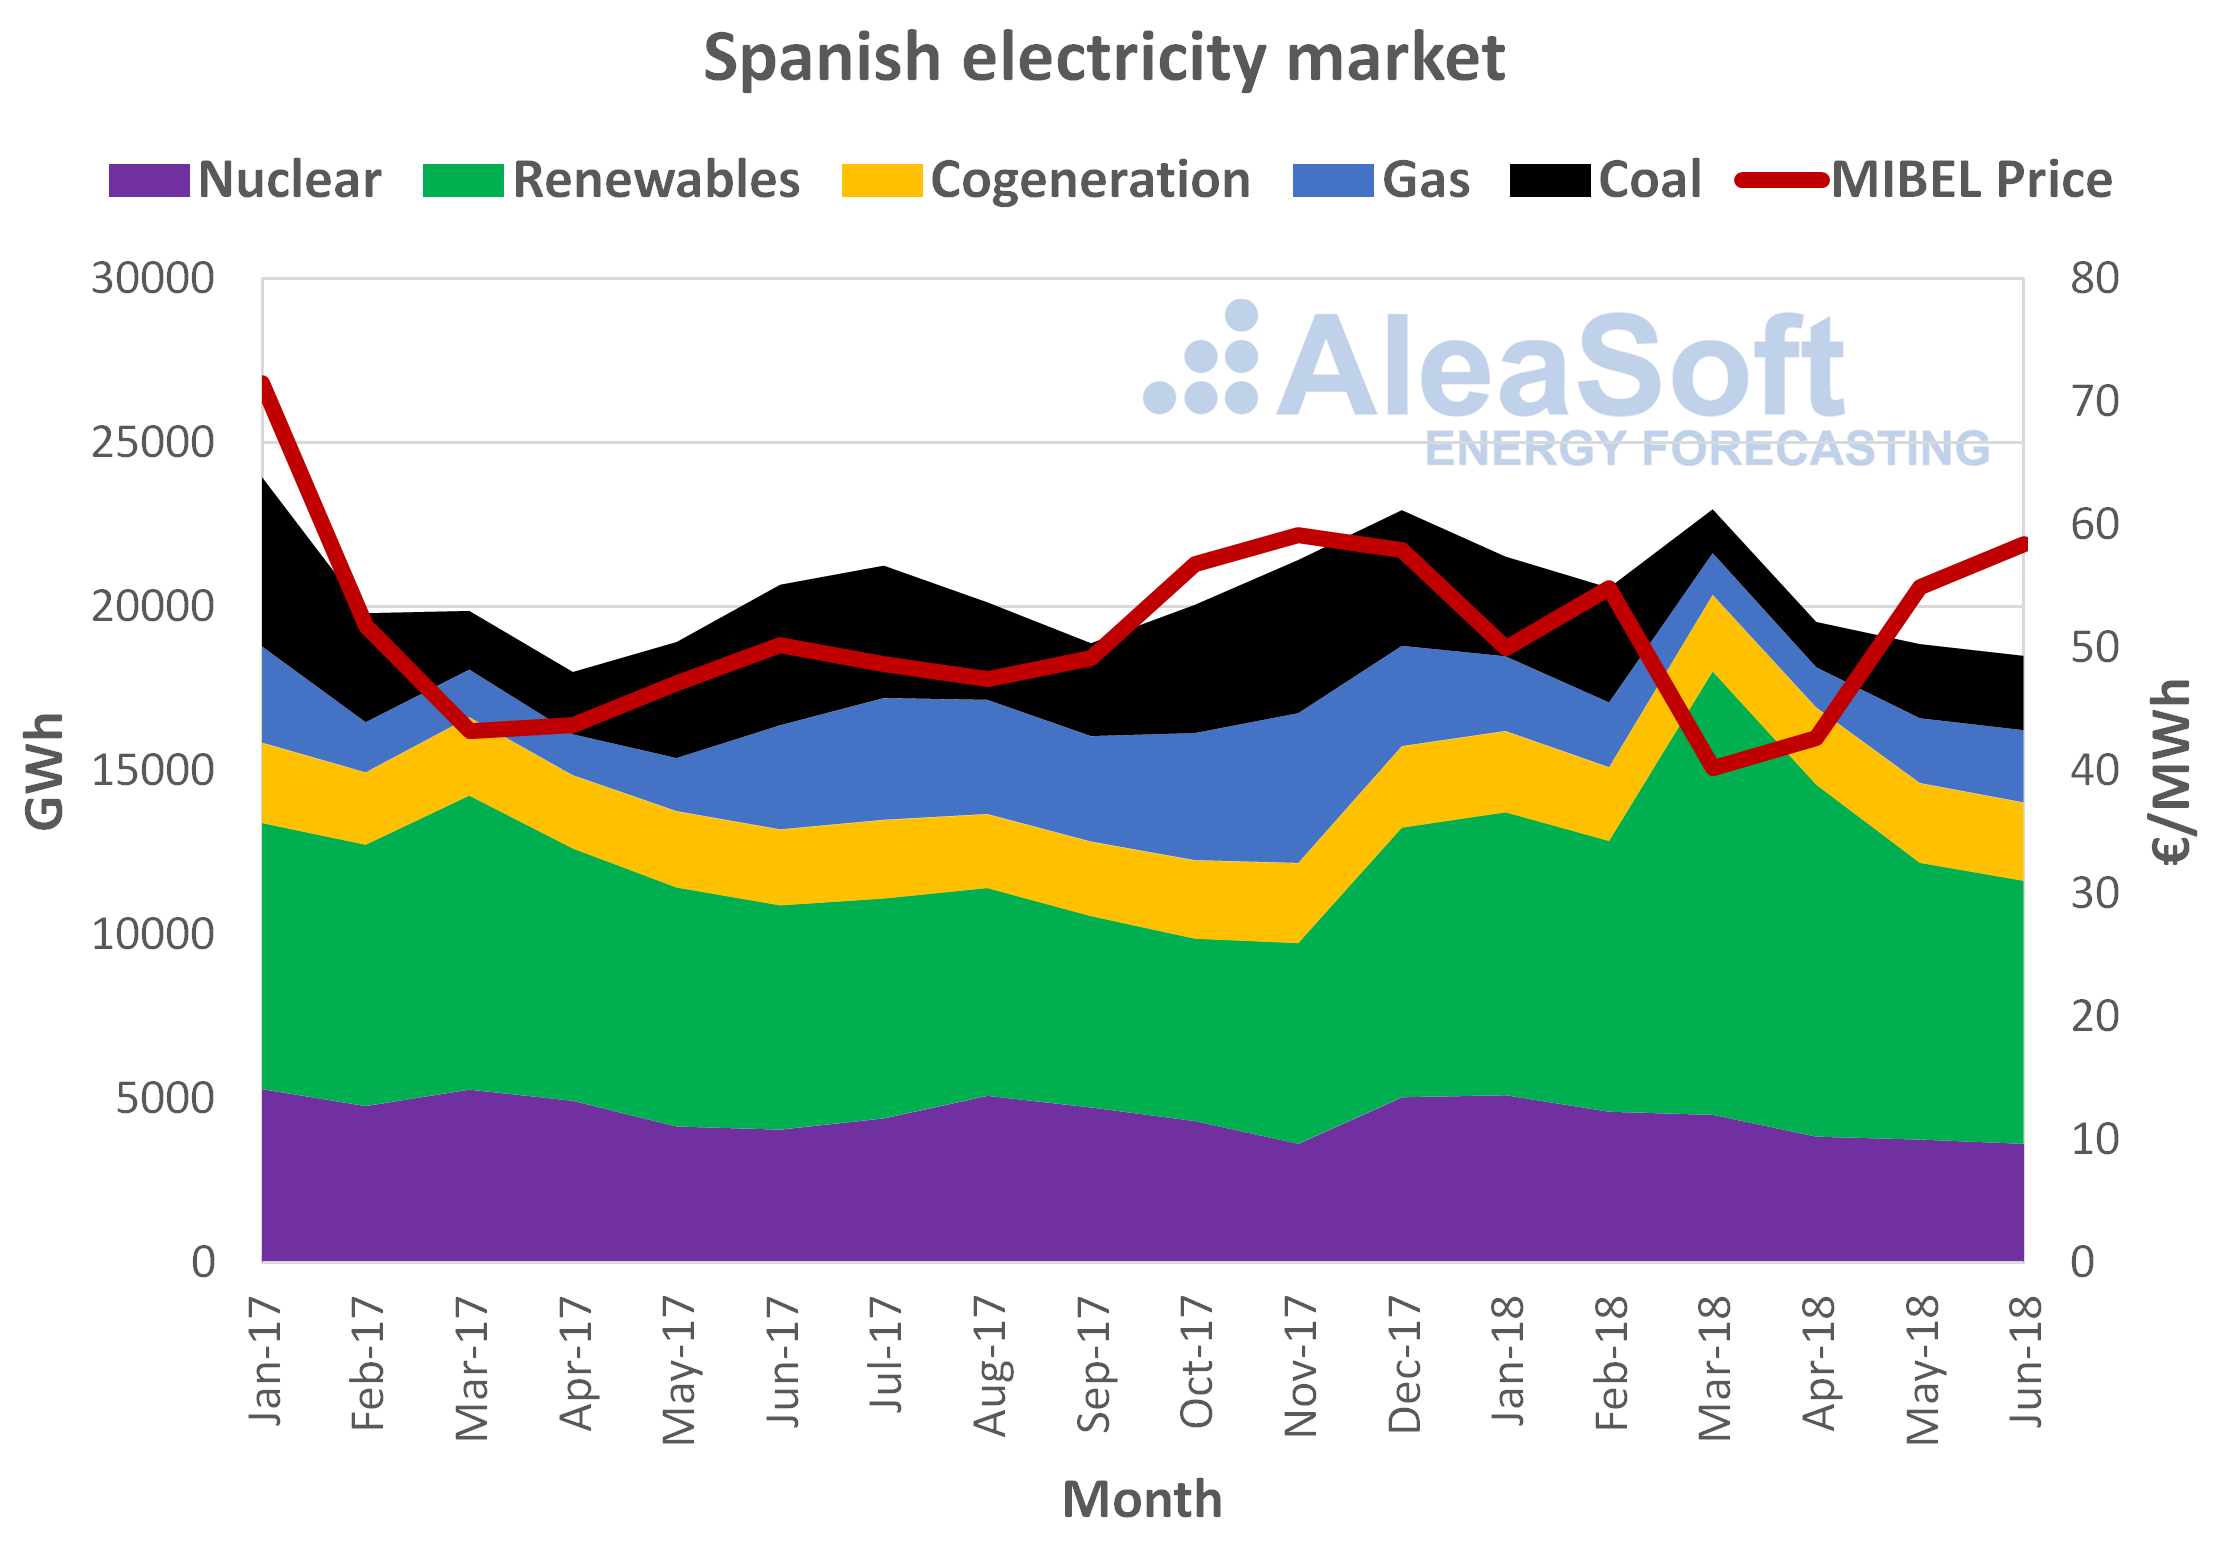 AleaSoft - Electricity production vs spanish price MIBEL